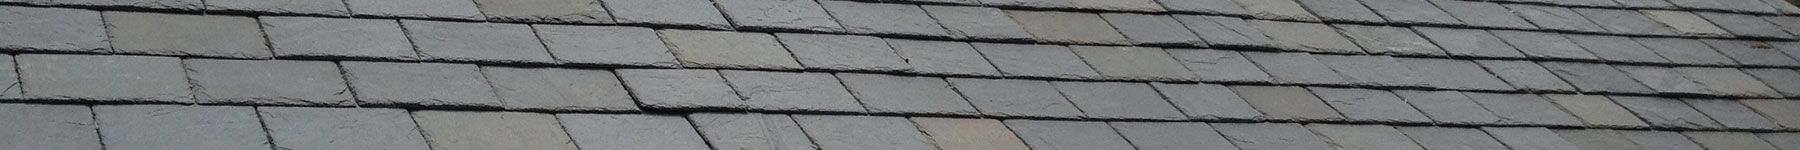 roof background 1